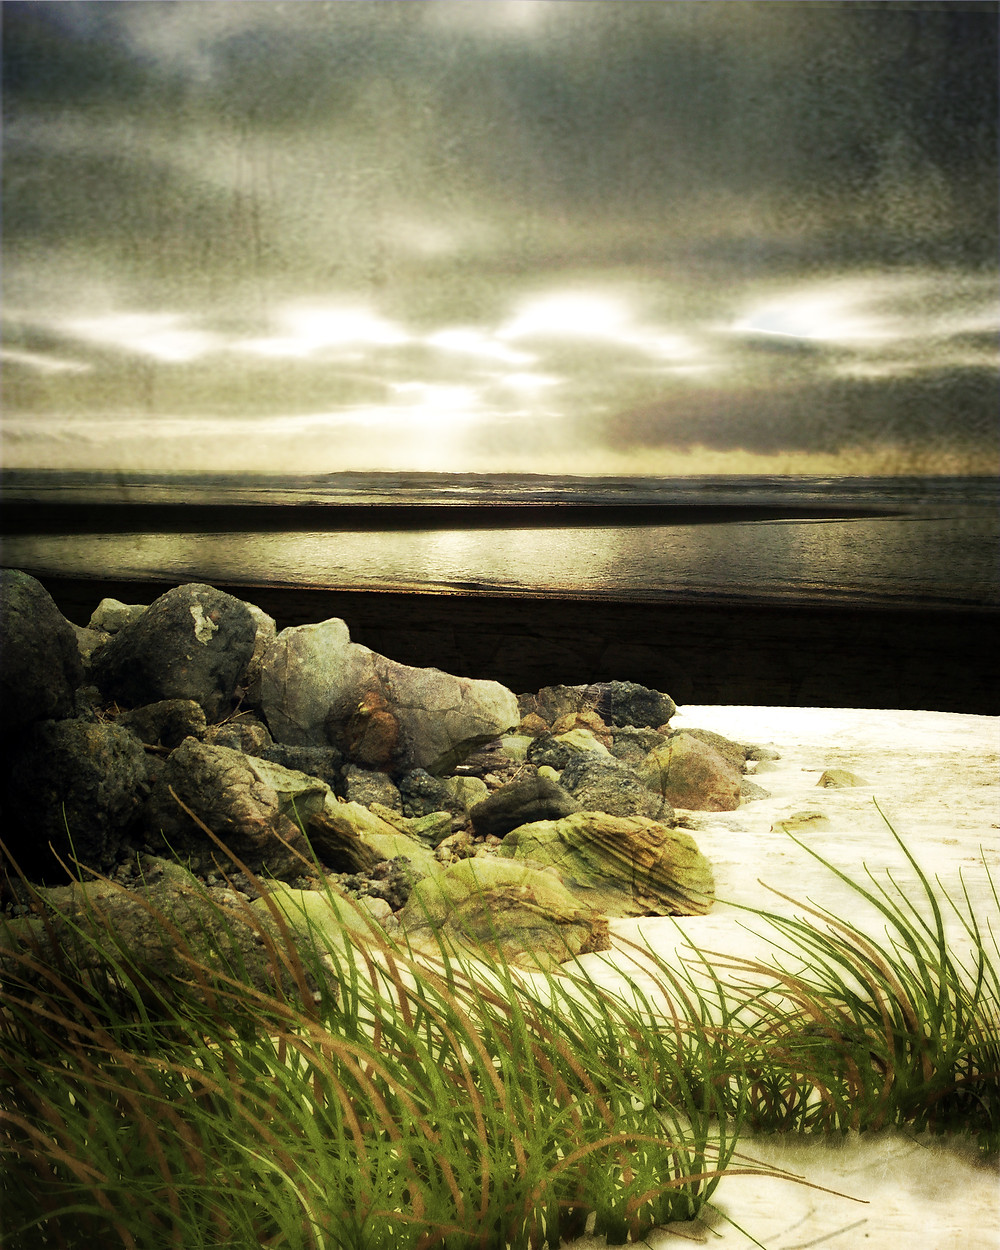 Exploring atmosphere with raster and Photoshop brush elements